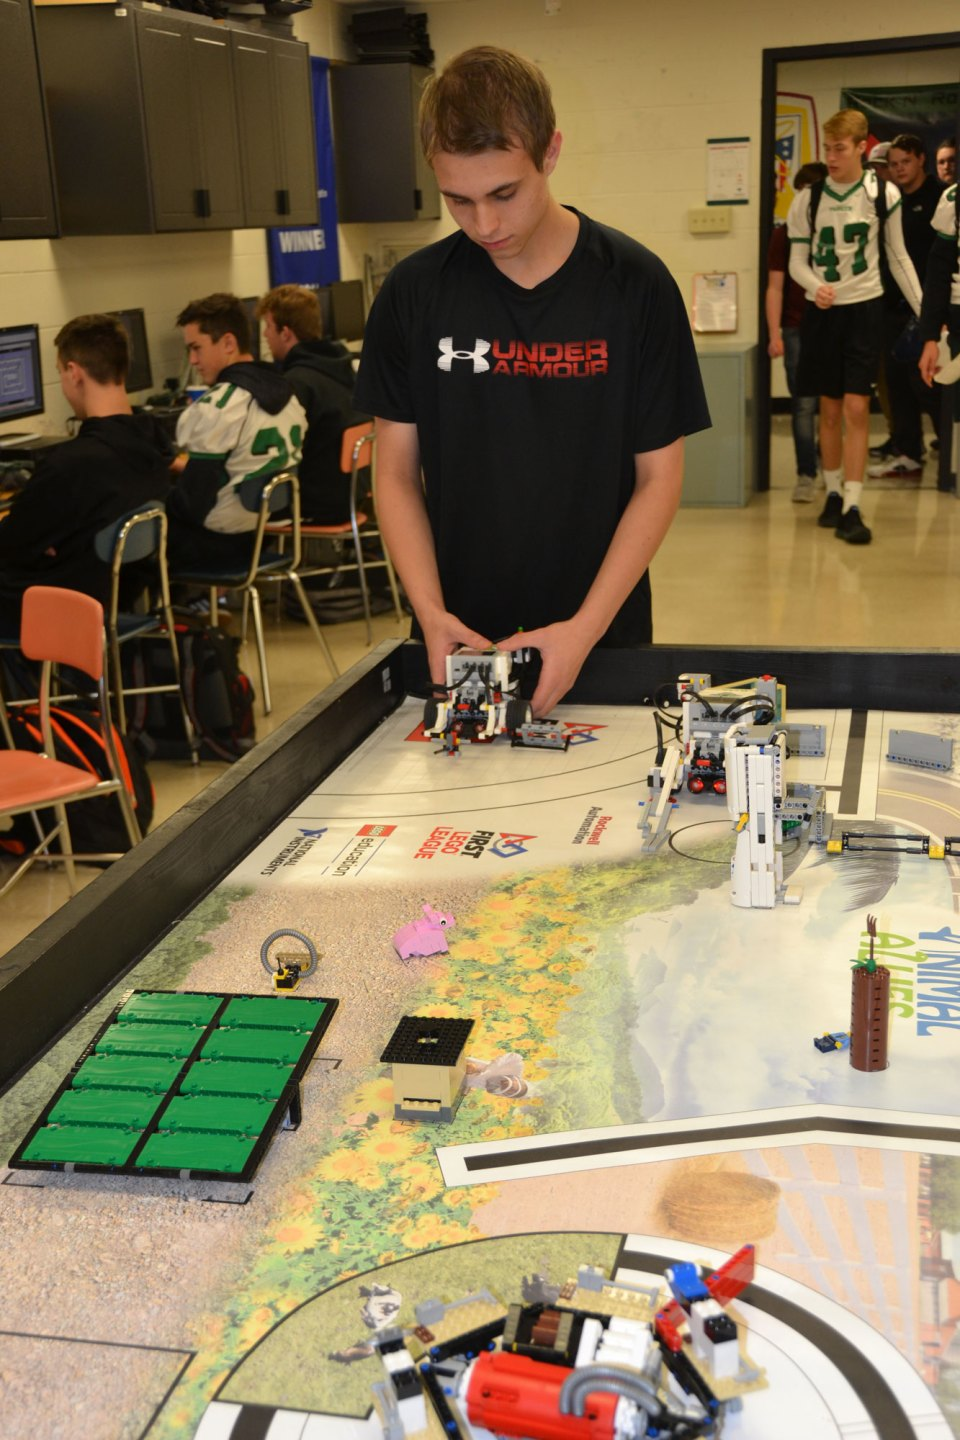 A student at Parker High School, in Janesville, Wisconsin, shows off the robot he has programmed. Parker students often travel to robotics competitions around the country.